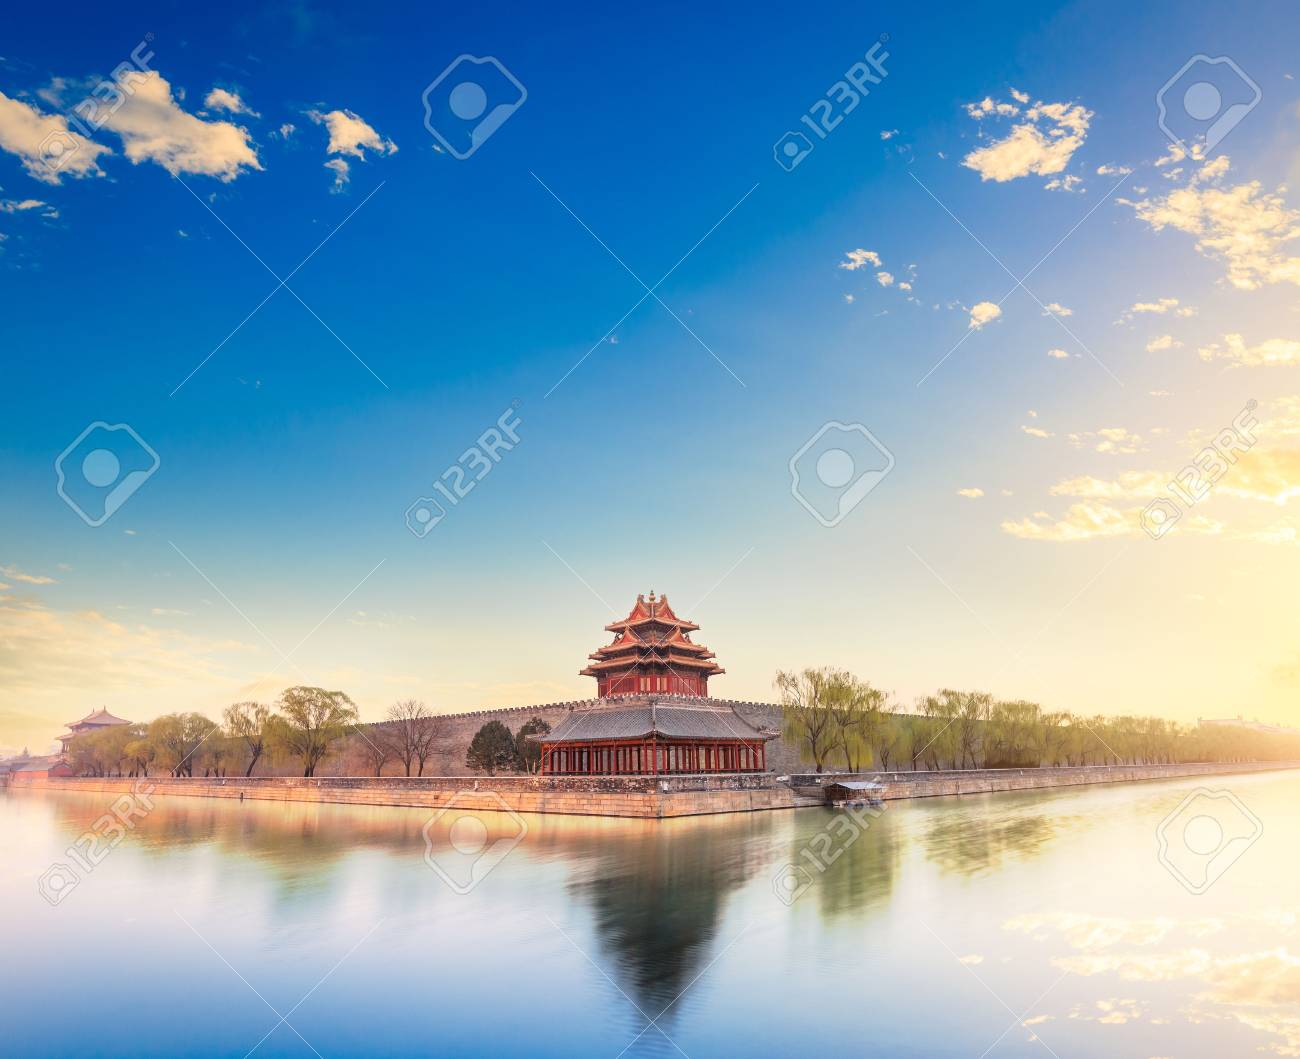 Beijing the Imperial Palace watchtower at dusk - 74552772